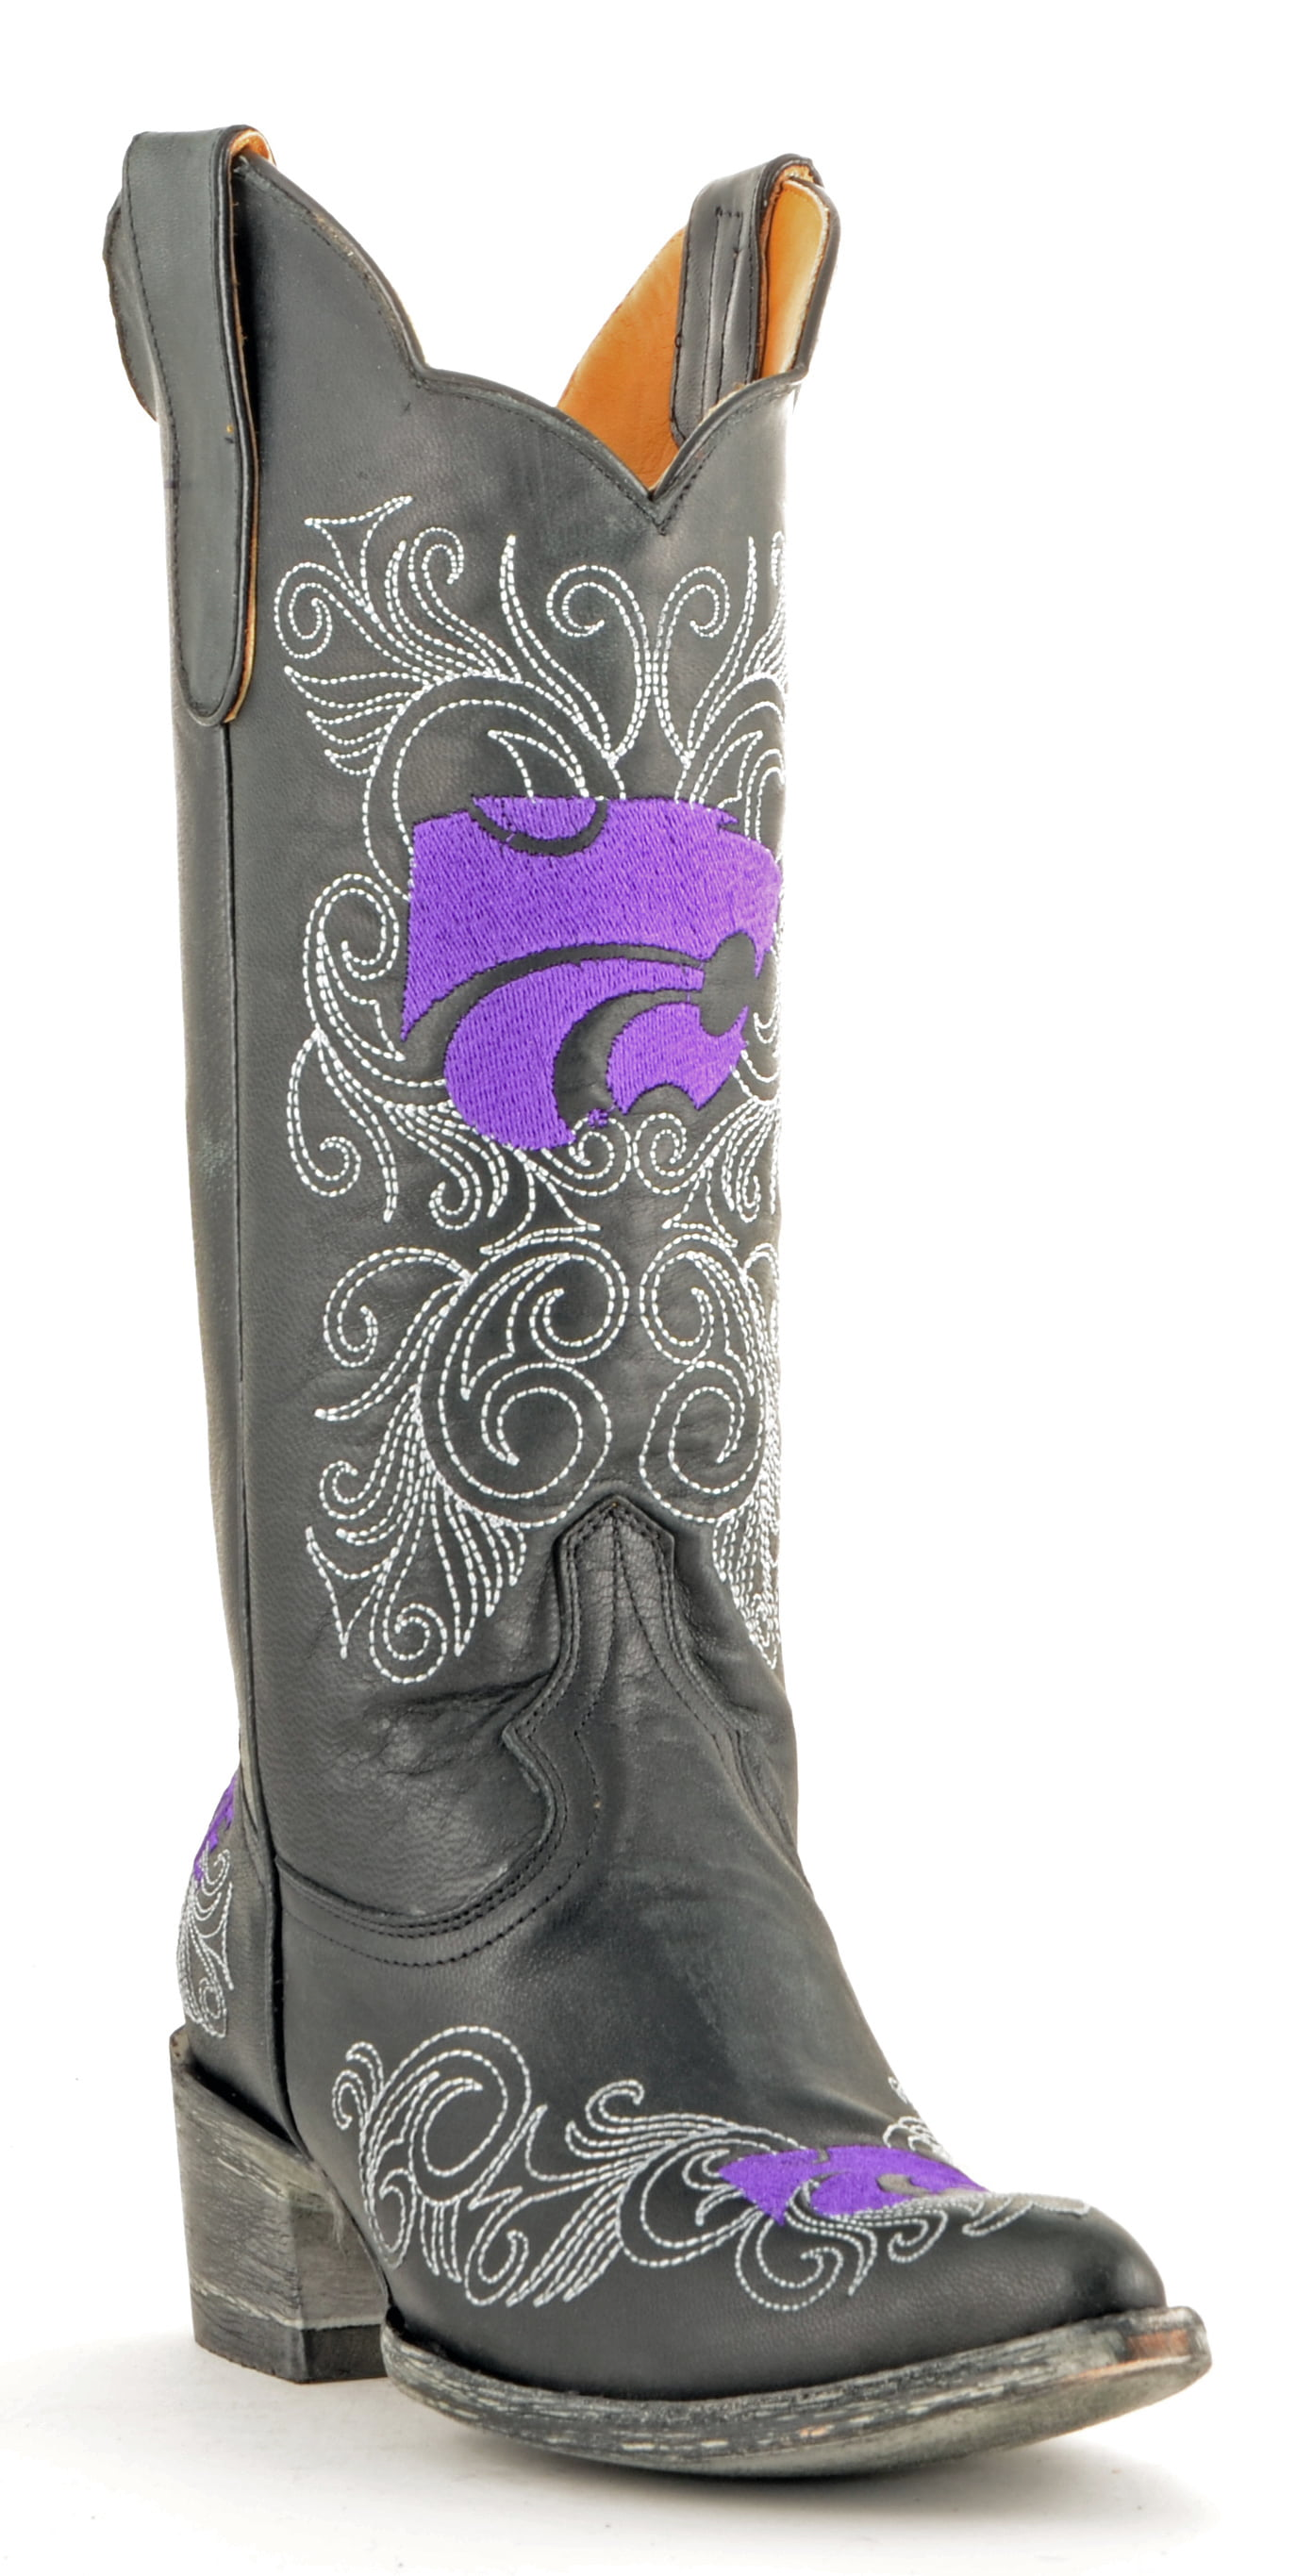 "Gameday Boots Womens 13"" Tall Leather Kansas State Cowboy Boots by GameDay Boots"